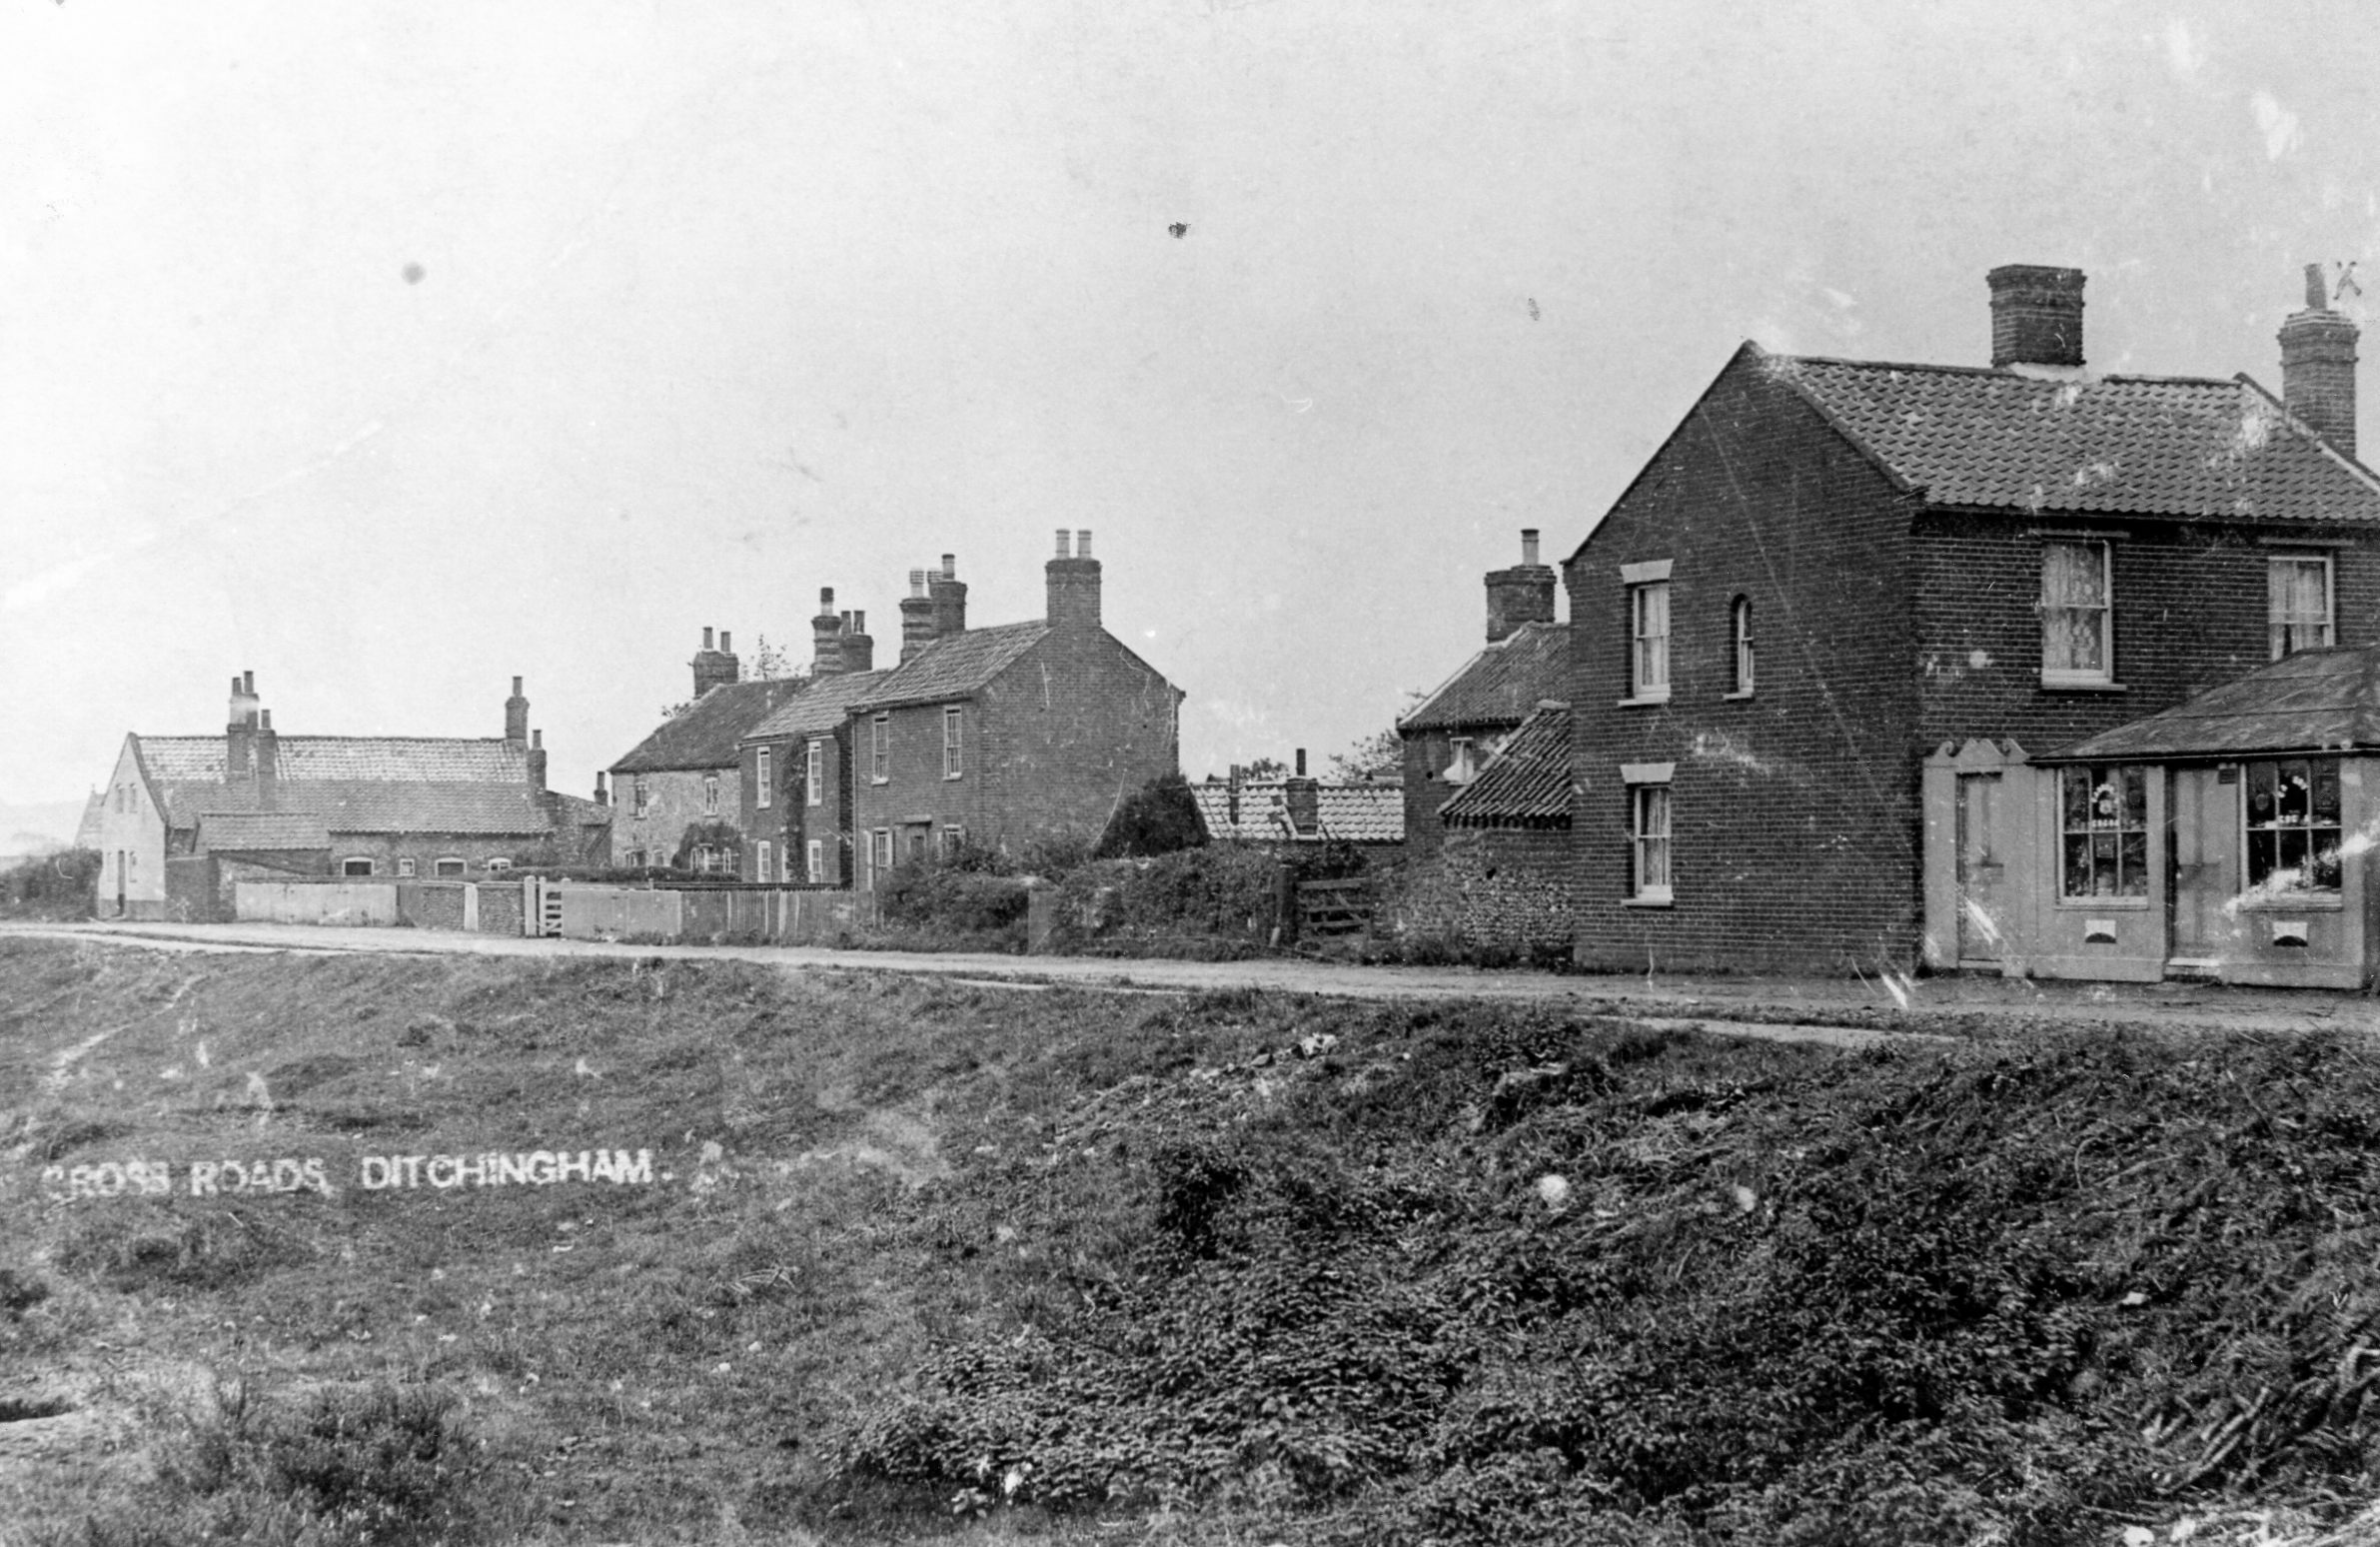 Station road Ditchingham